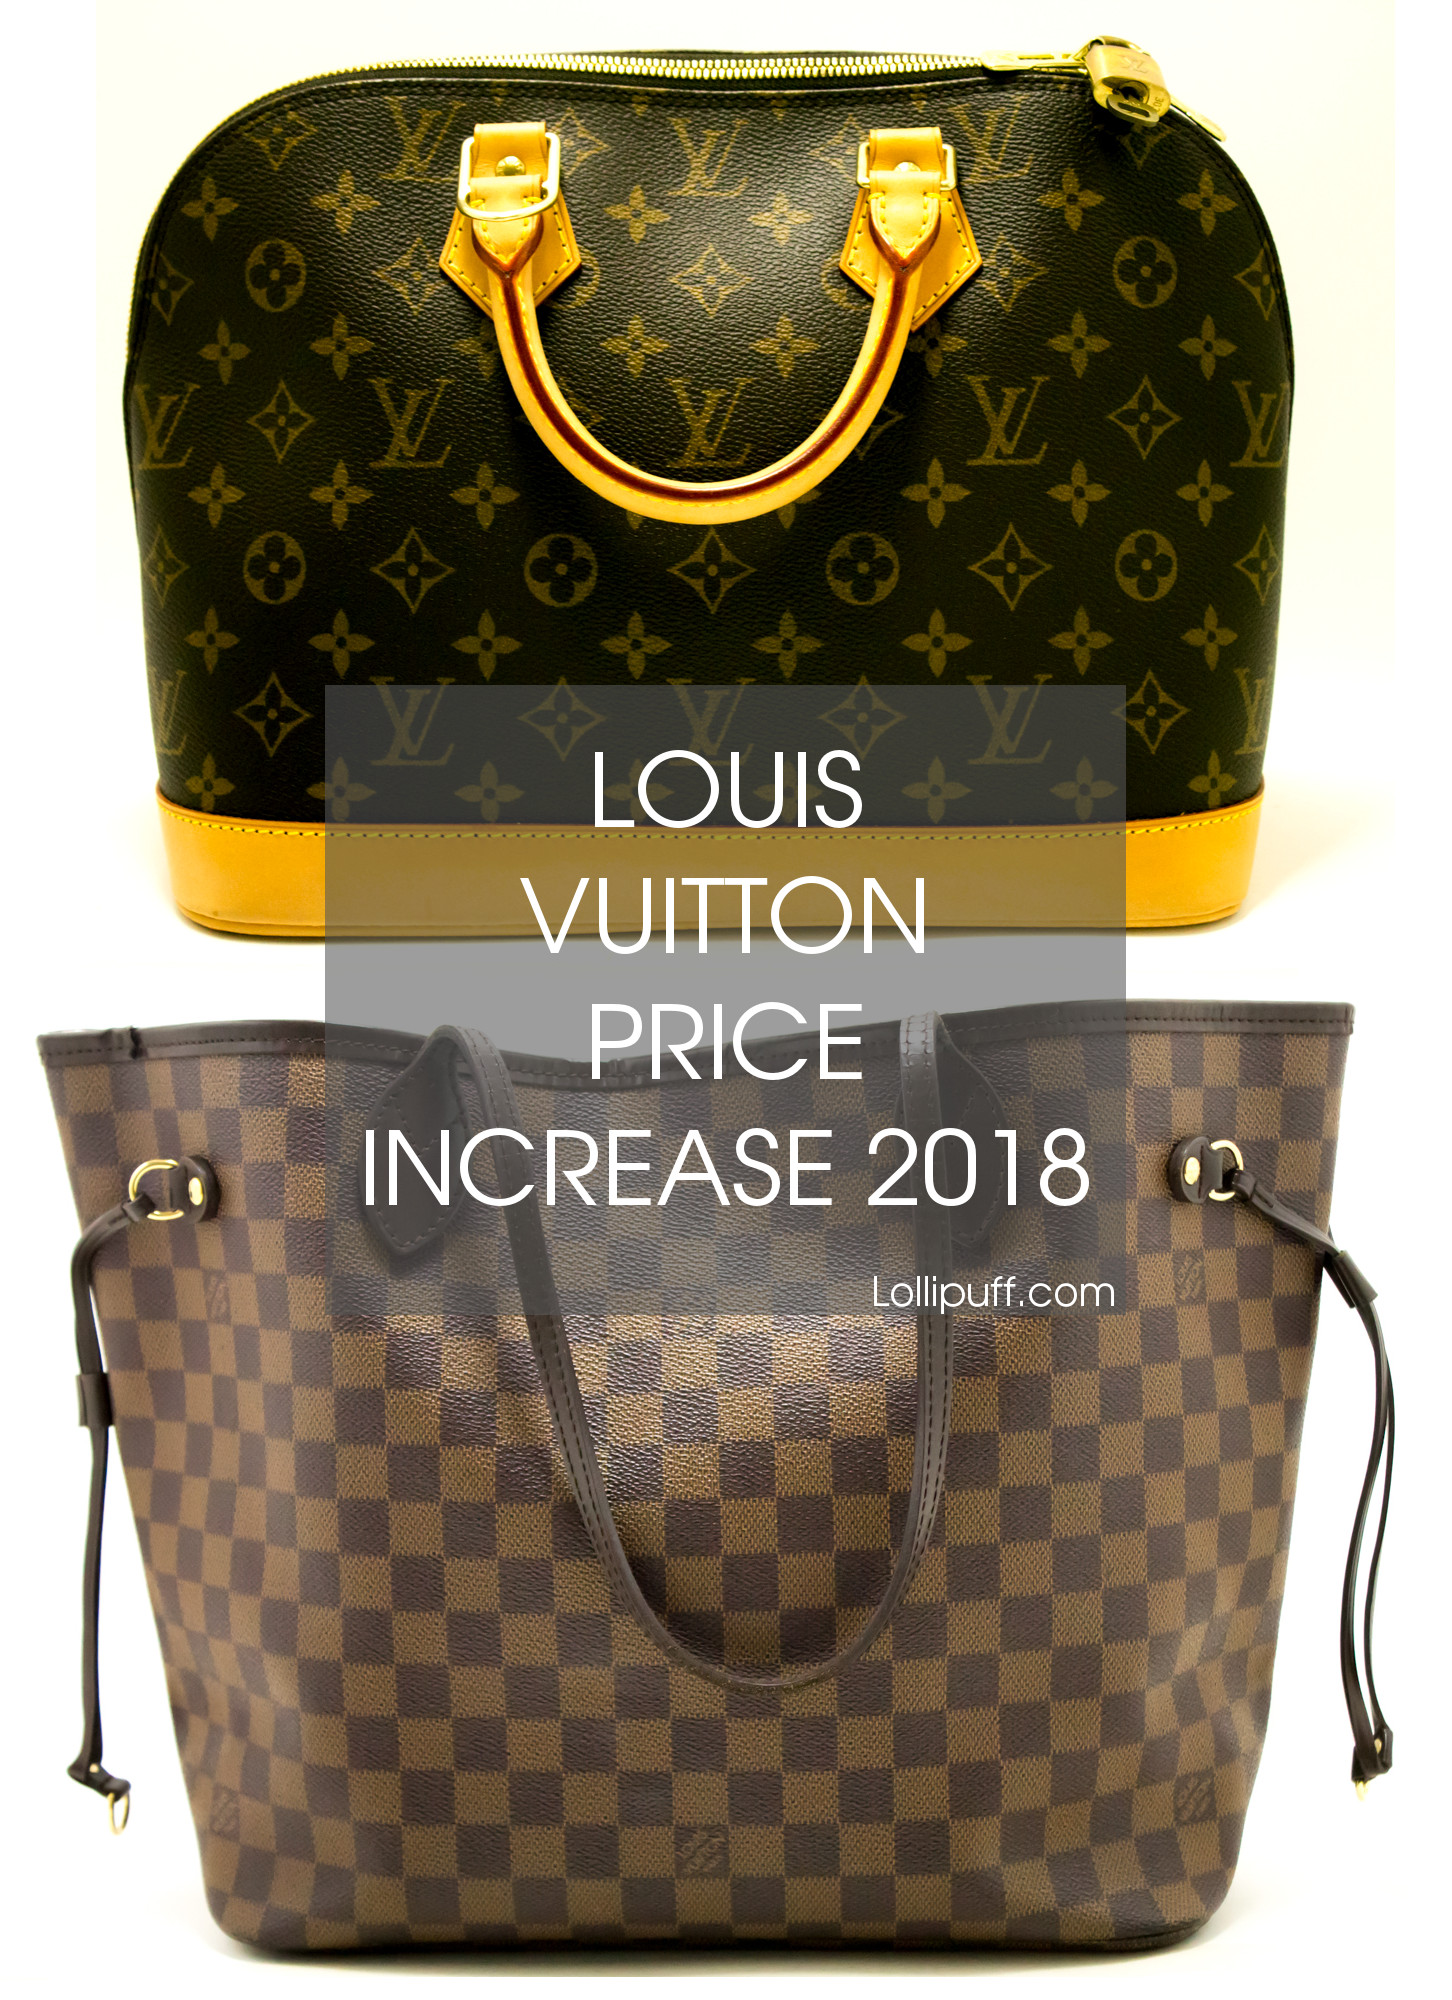 Louis Vuitton classic canvas handbags